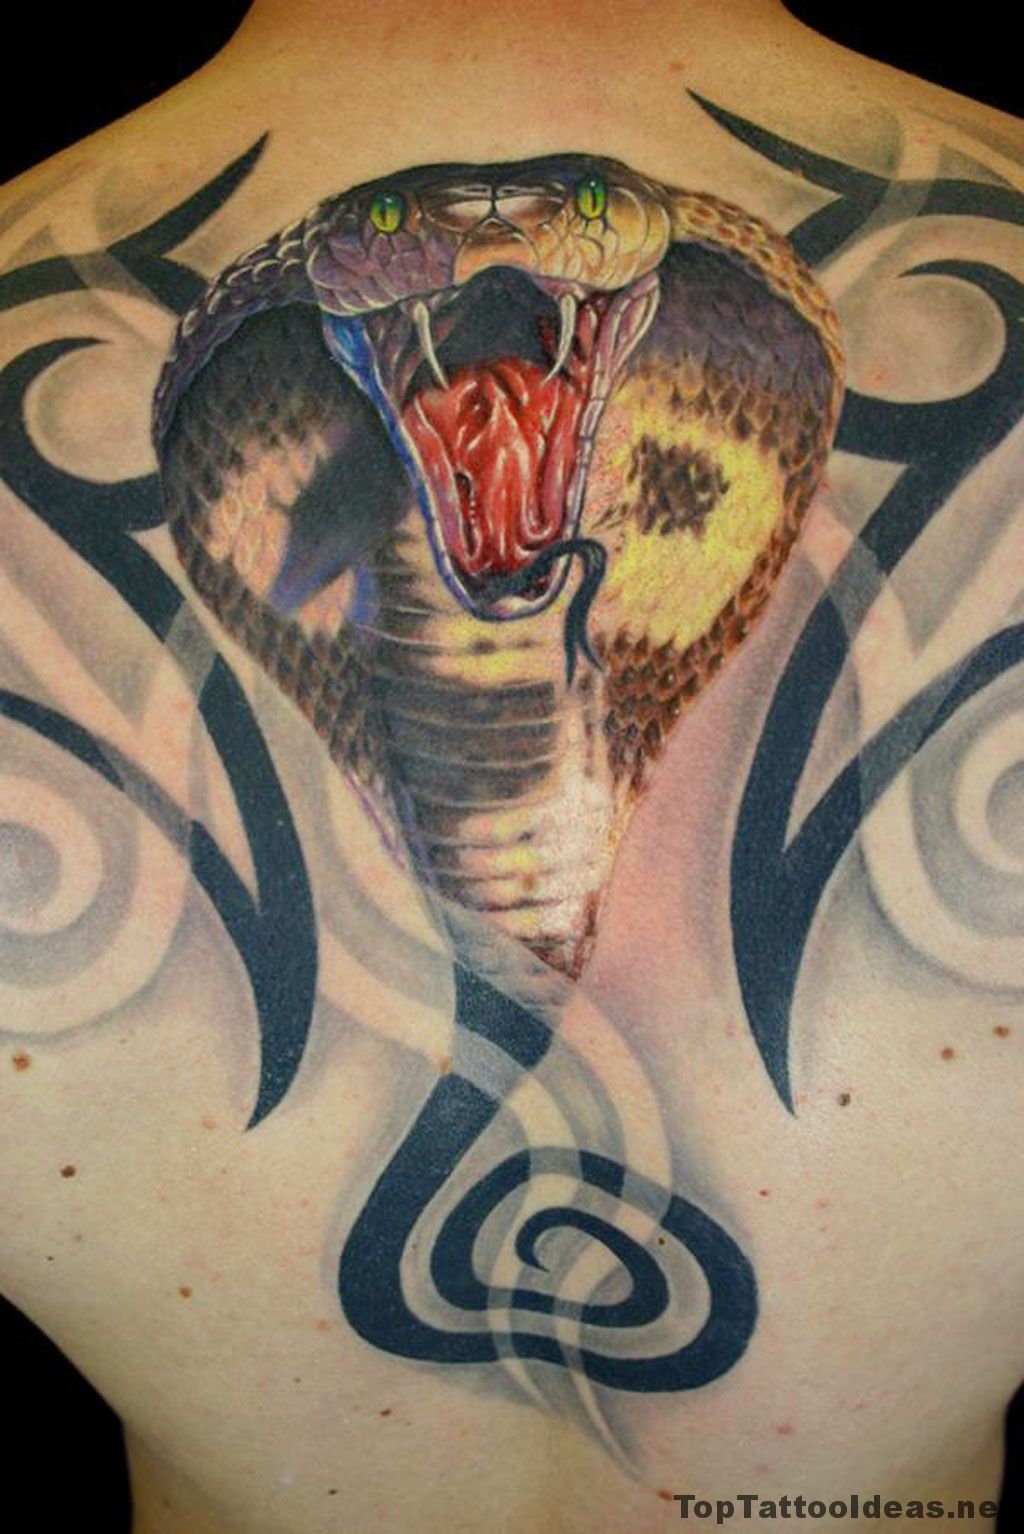 3d cobra tattoo idea tattoo ideas pinterest cobra tattoo tattoo ideas and tattoos. Black Bedroom Furniture Sets. Home Design Ideas